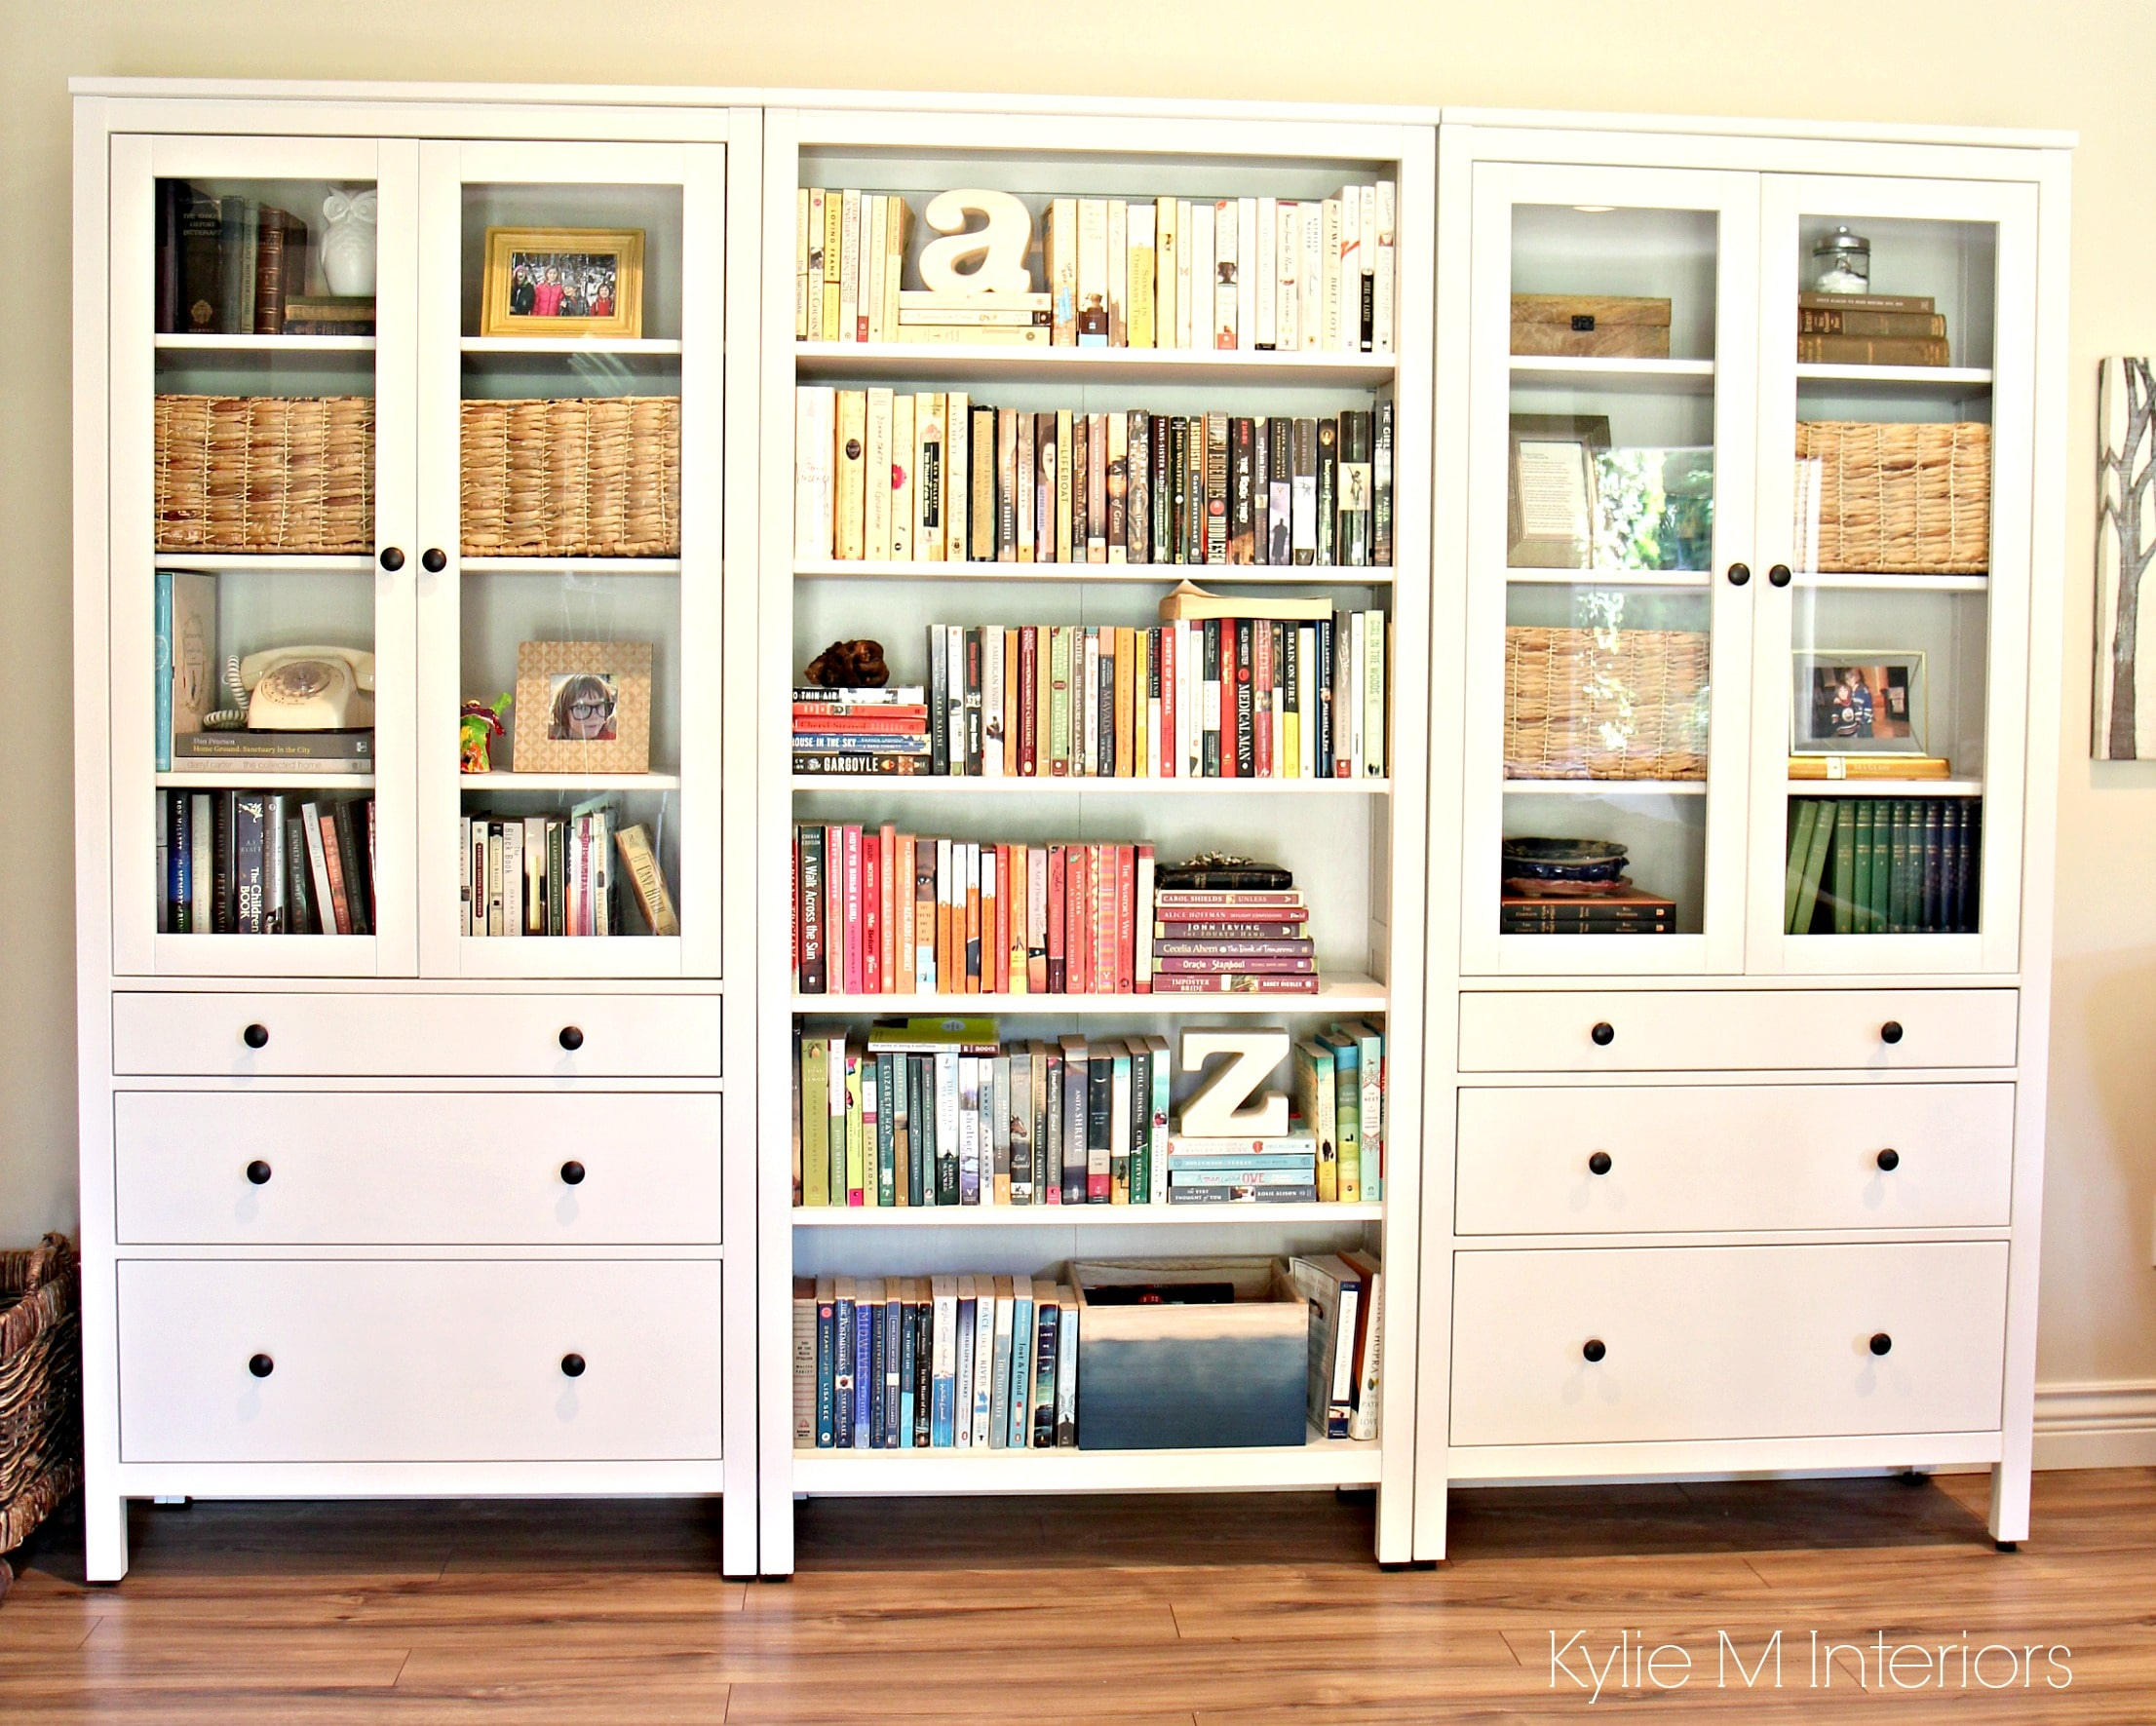 Ikea Hemnes Schuhbank Ikea Hemnes Bookcase With Colour Coordinated Books In